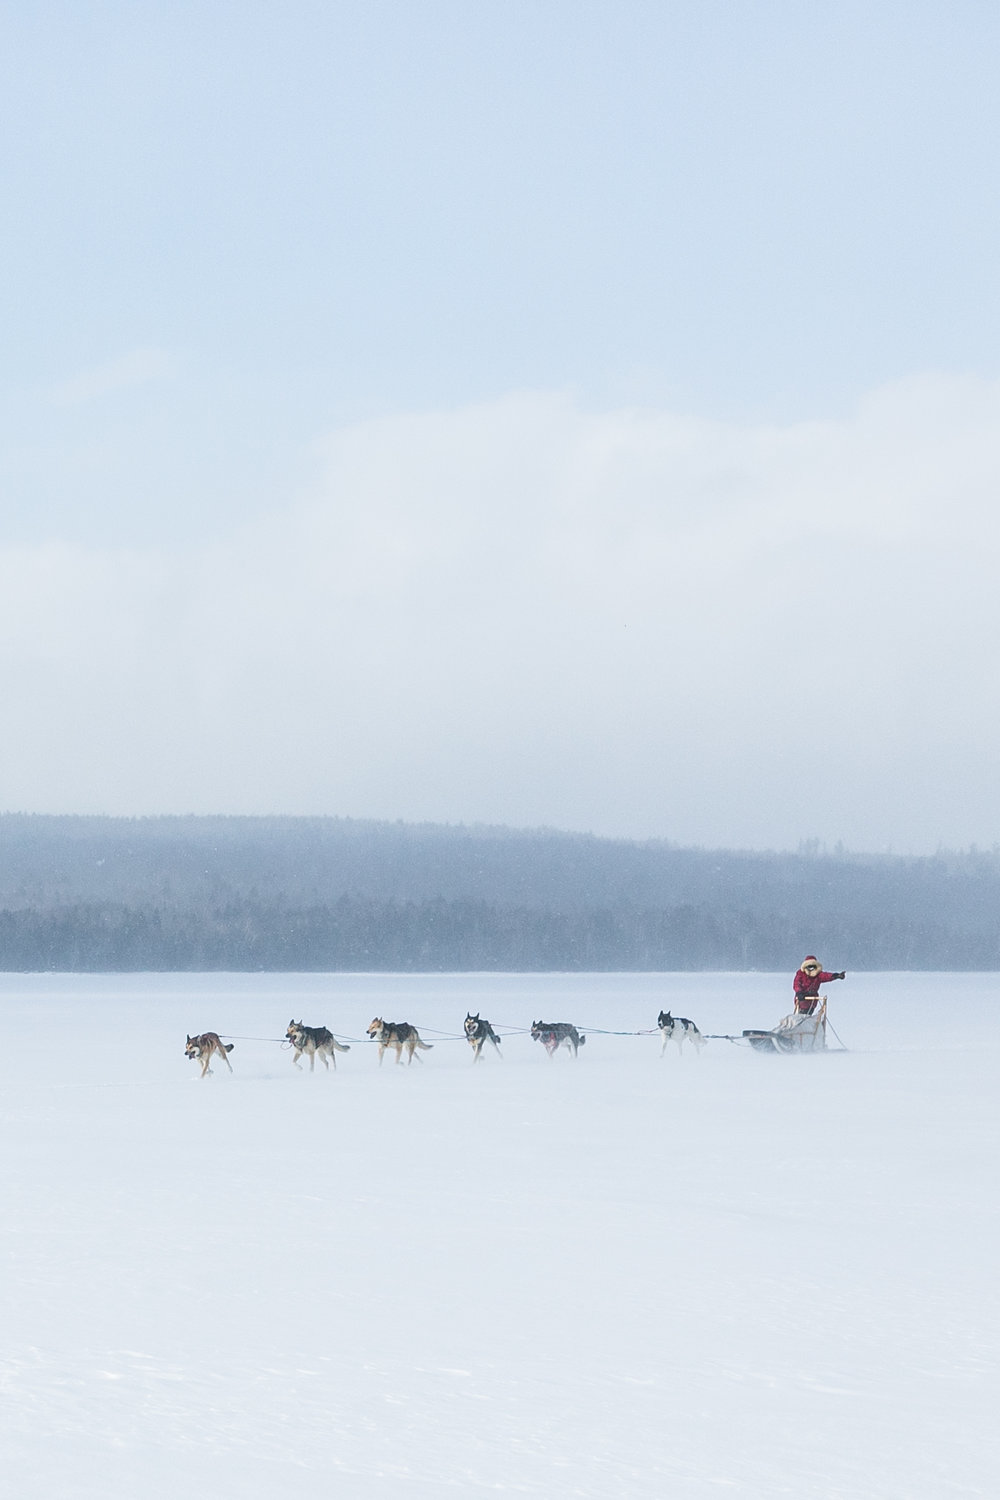 reighley_dogsled-7244.jpg